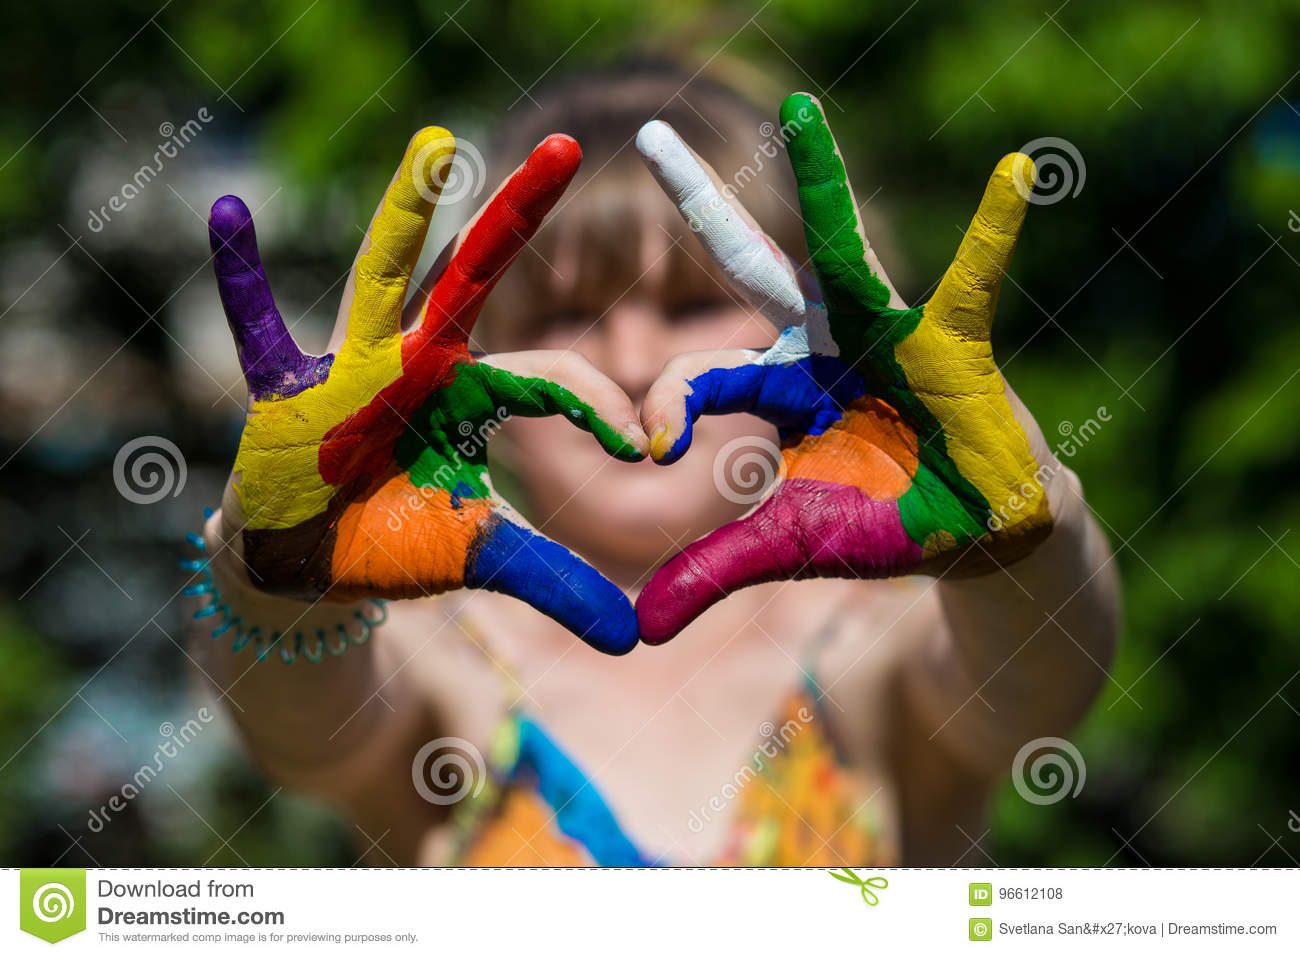 Kids hands in color paints make a heart shape, focus on hands